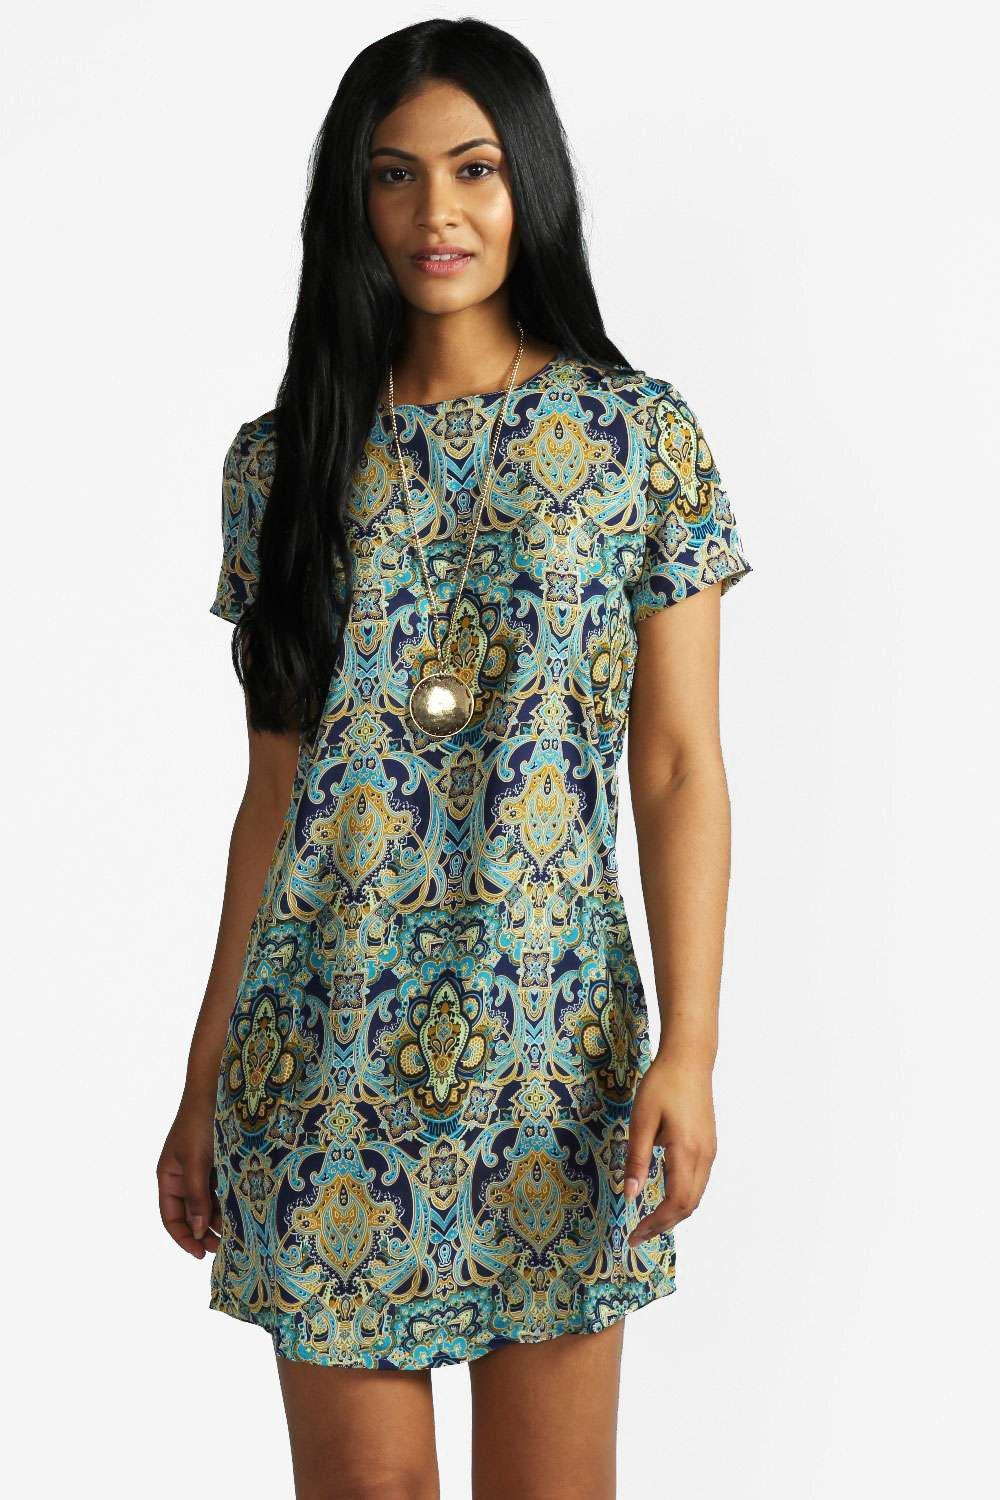 Kelly Paisley Print Short Sleeve Shift Dress at boohoo.com